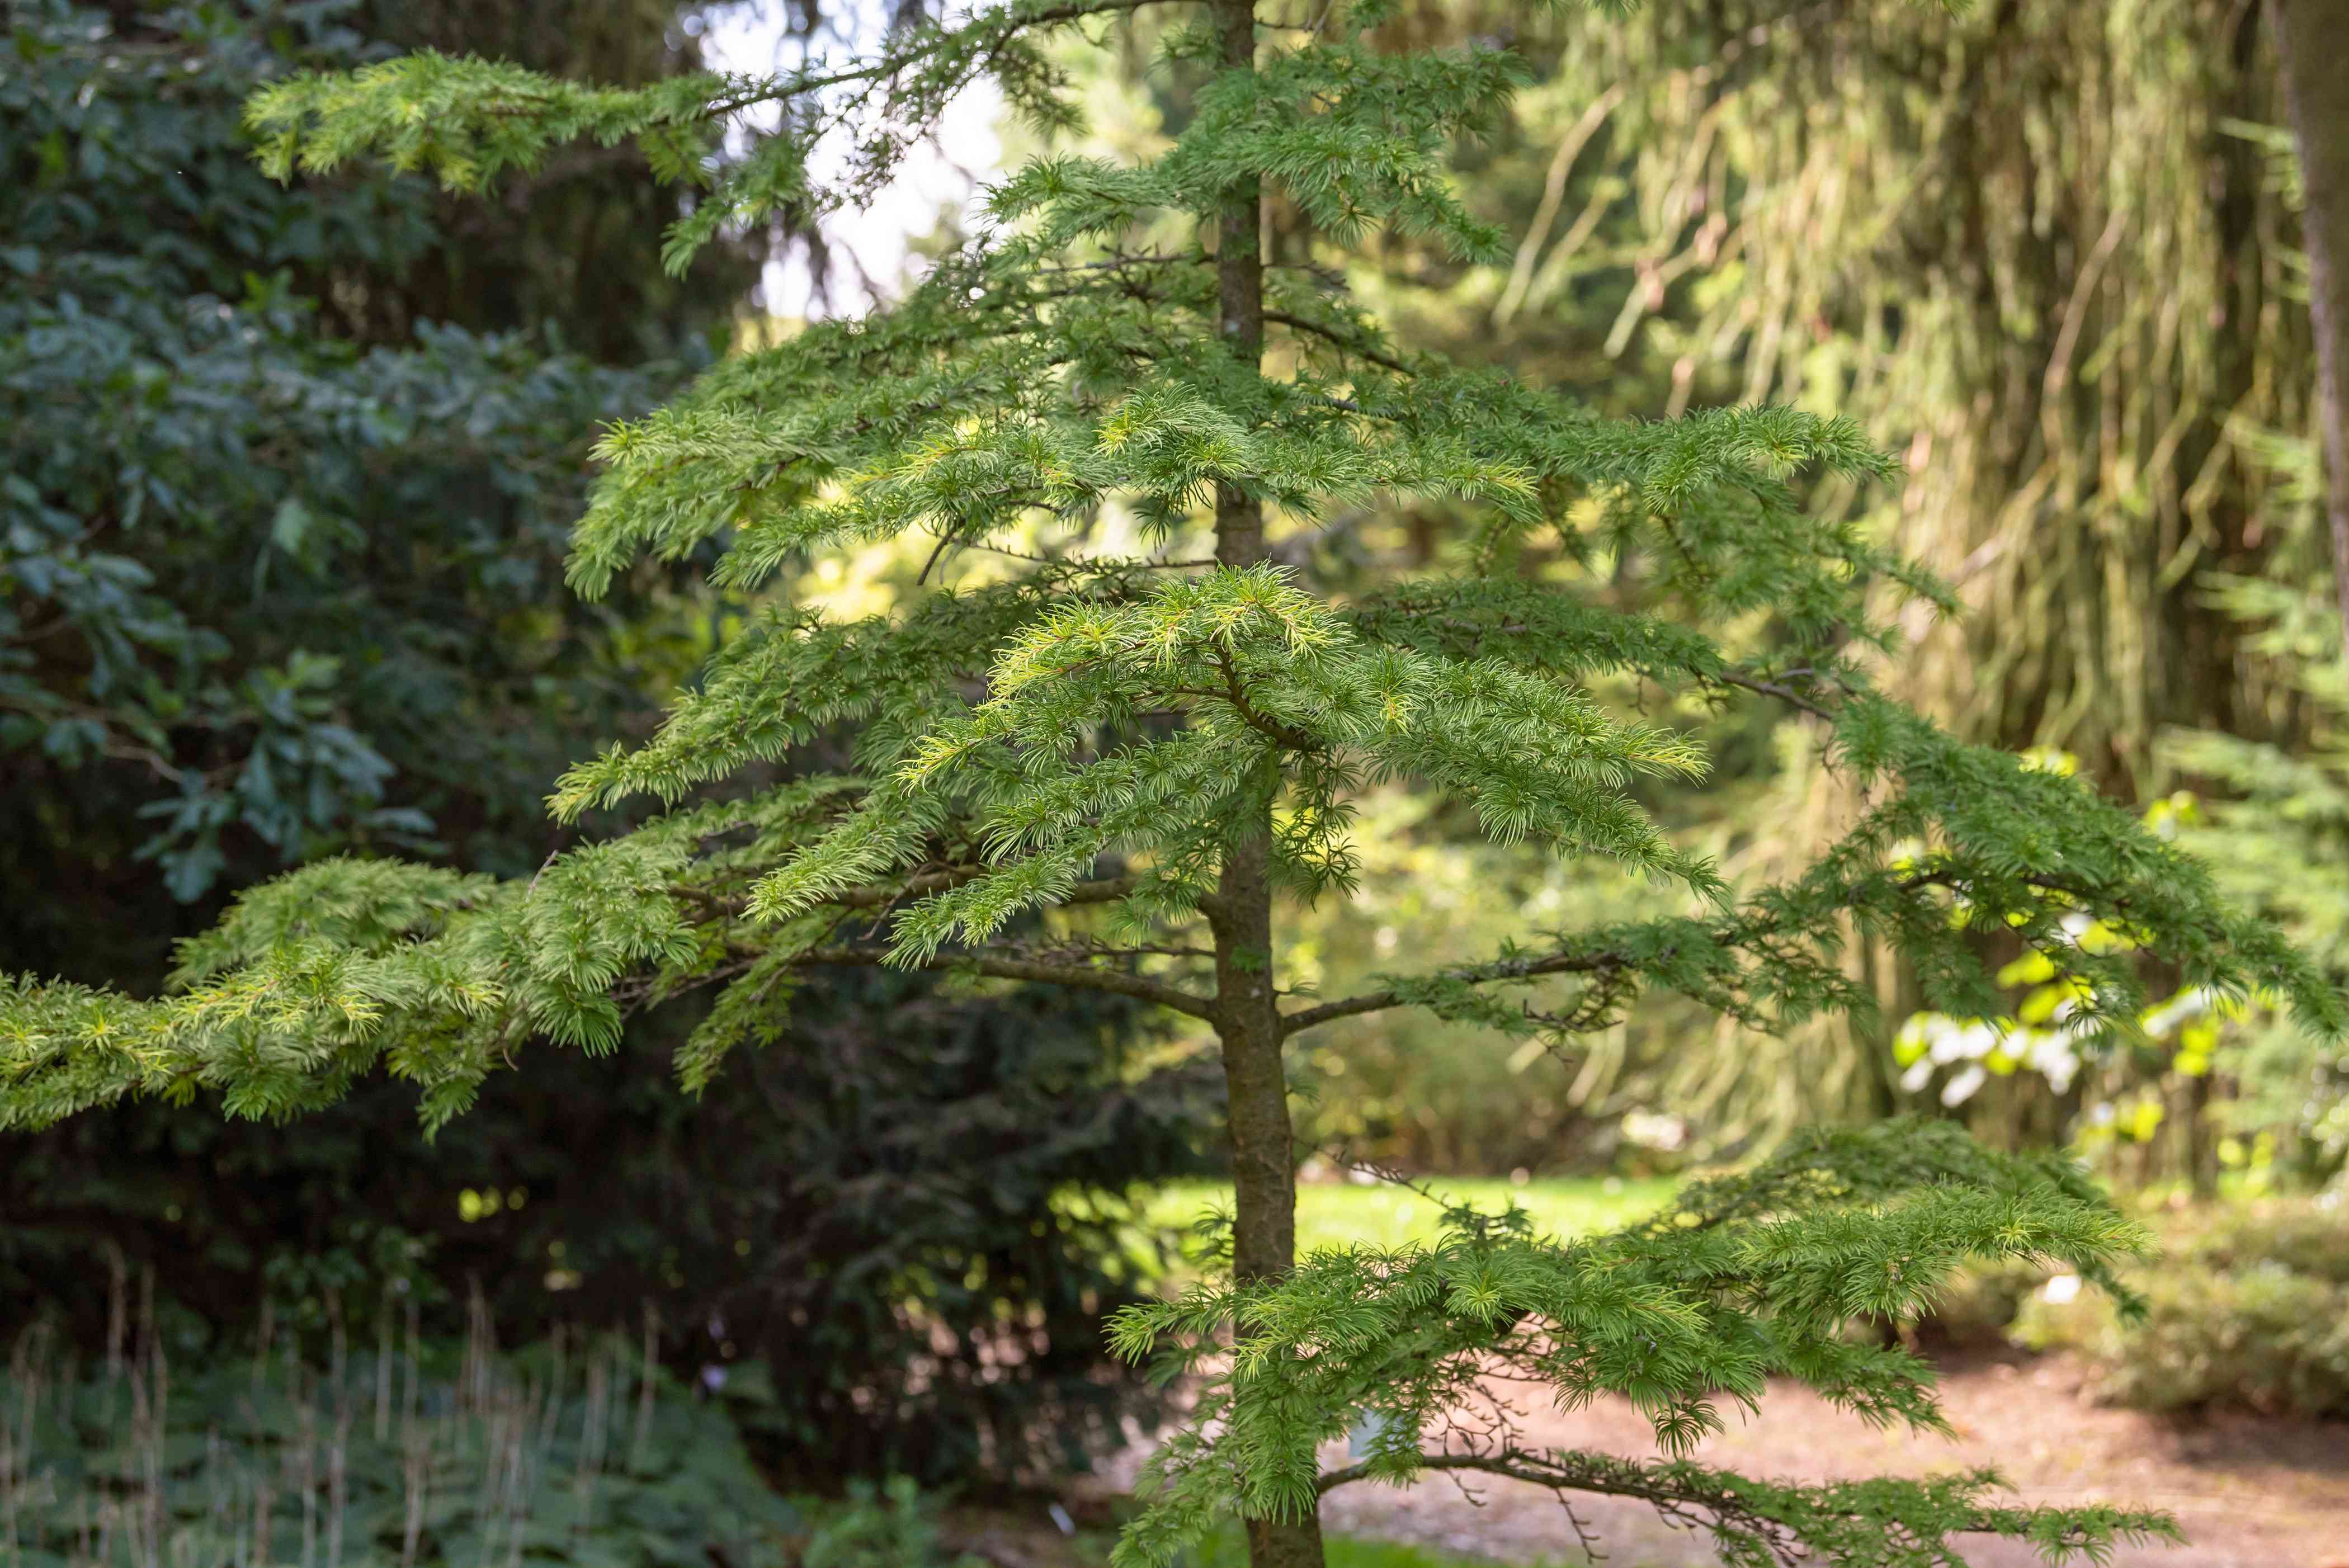 Golden larch tree with thin trunk and small green needles on branches